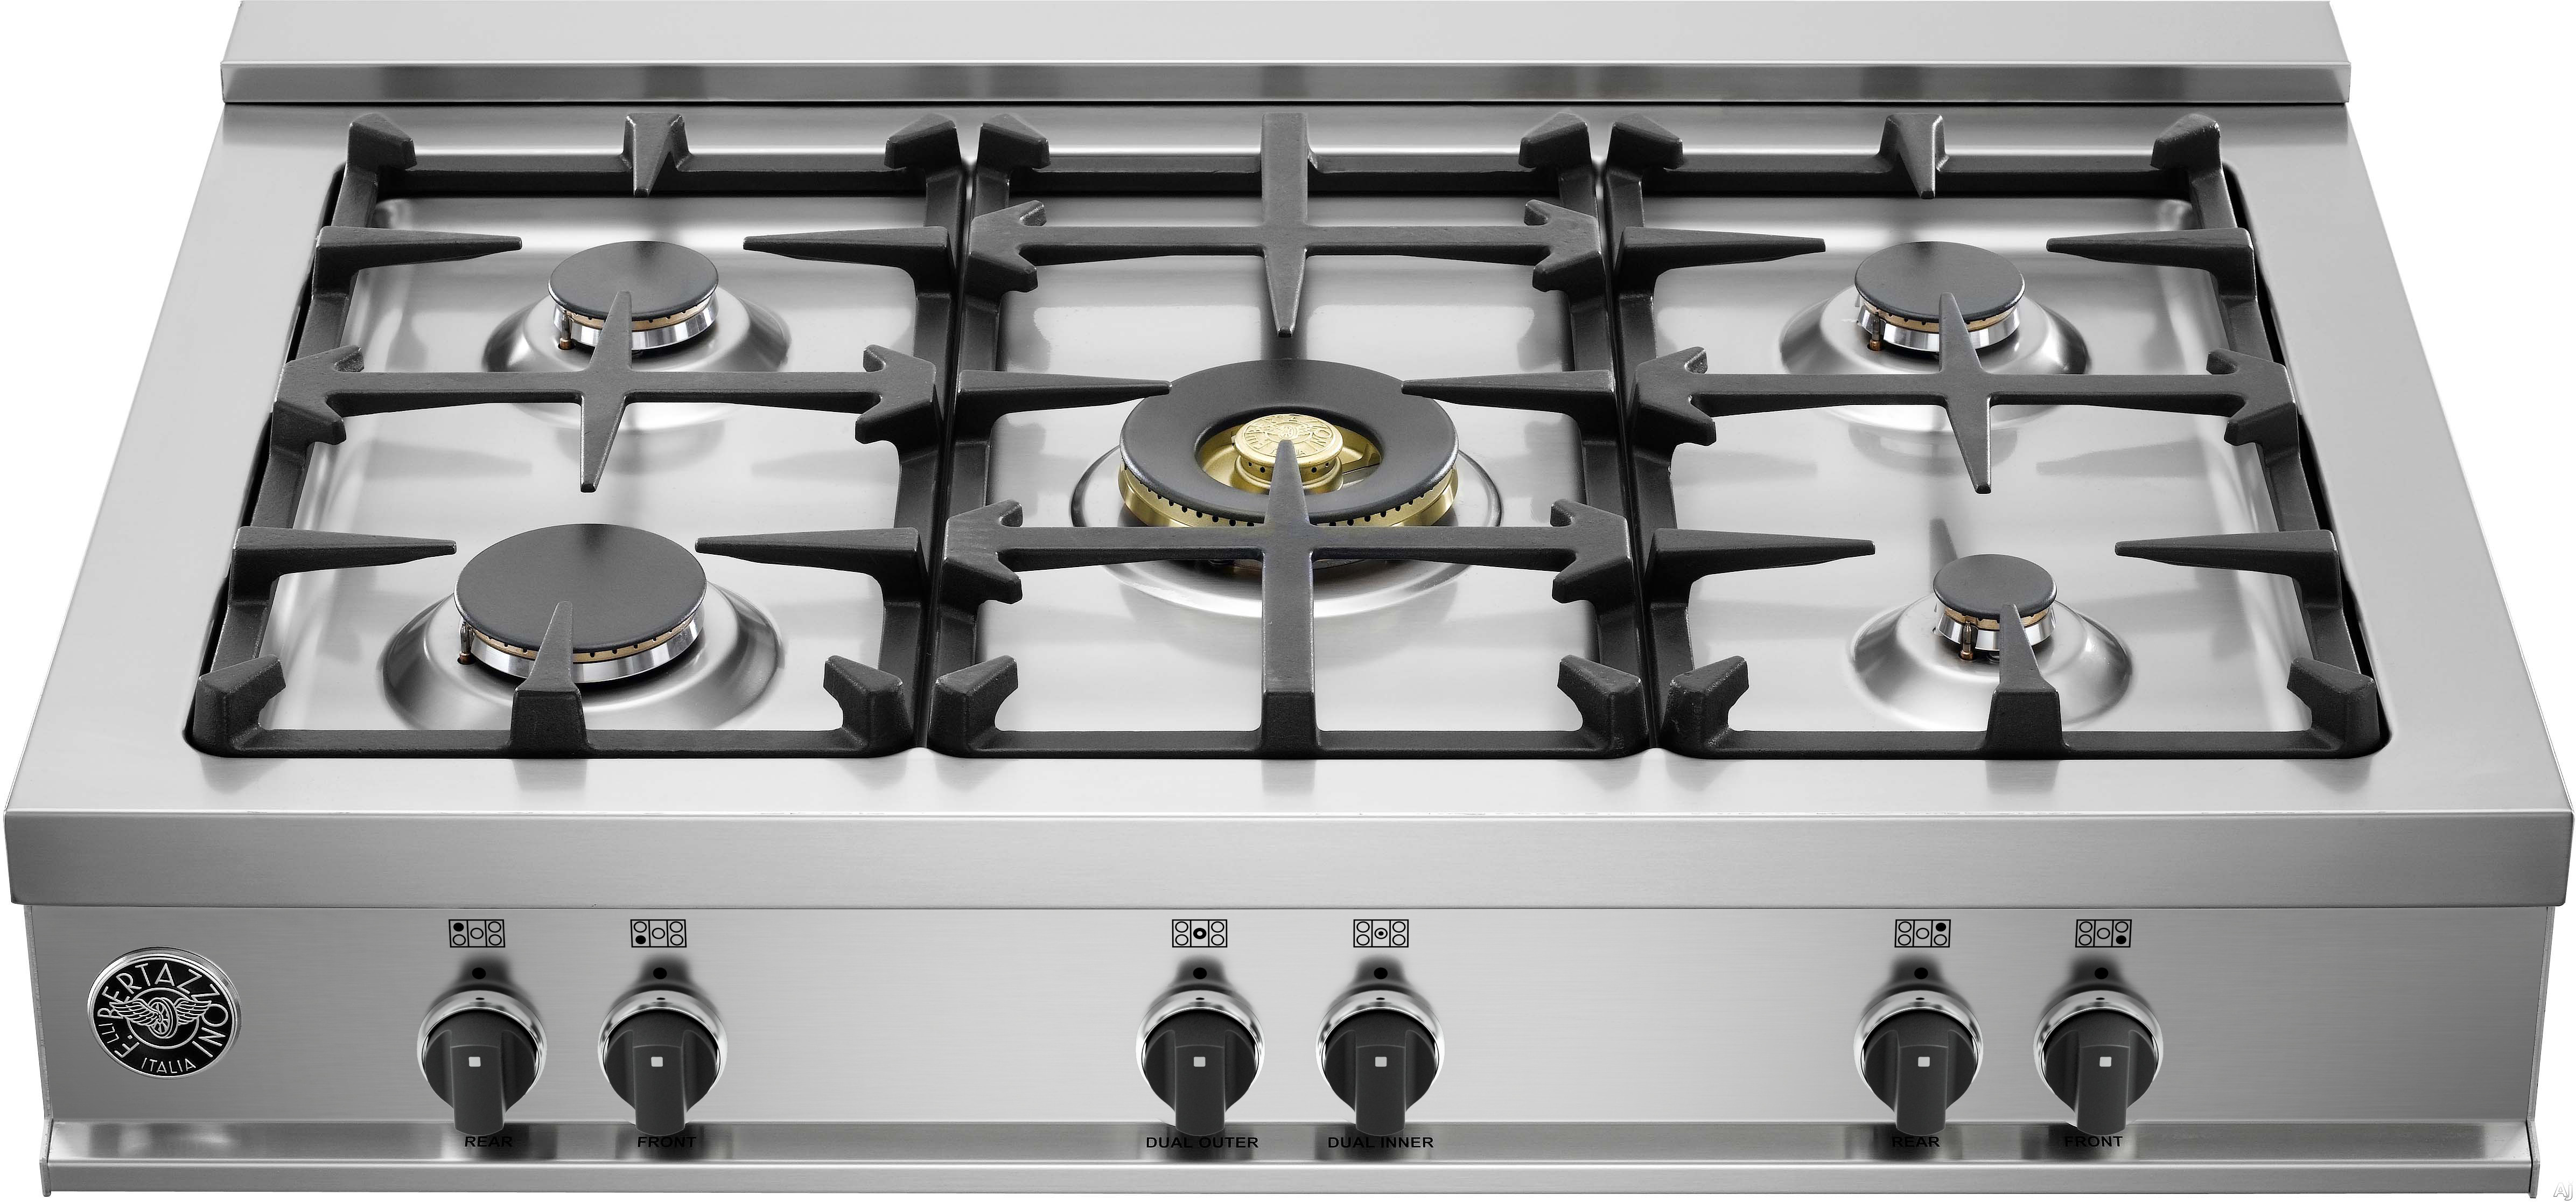 Bertazzoni Master Series CB36M500 36 Inch Gas Rangetop with 5 Sealed Burners, 18,000 BTU Dual-Ring Power Burner, Continuous Cast Iron Grates and Electronic Ignition